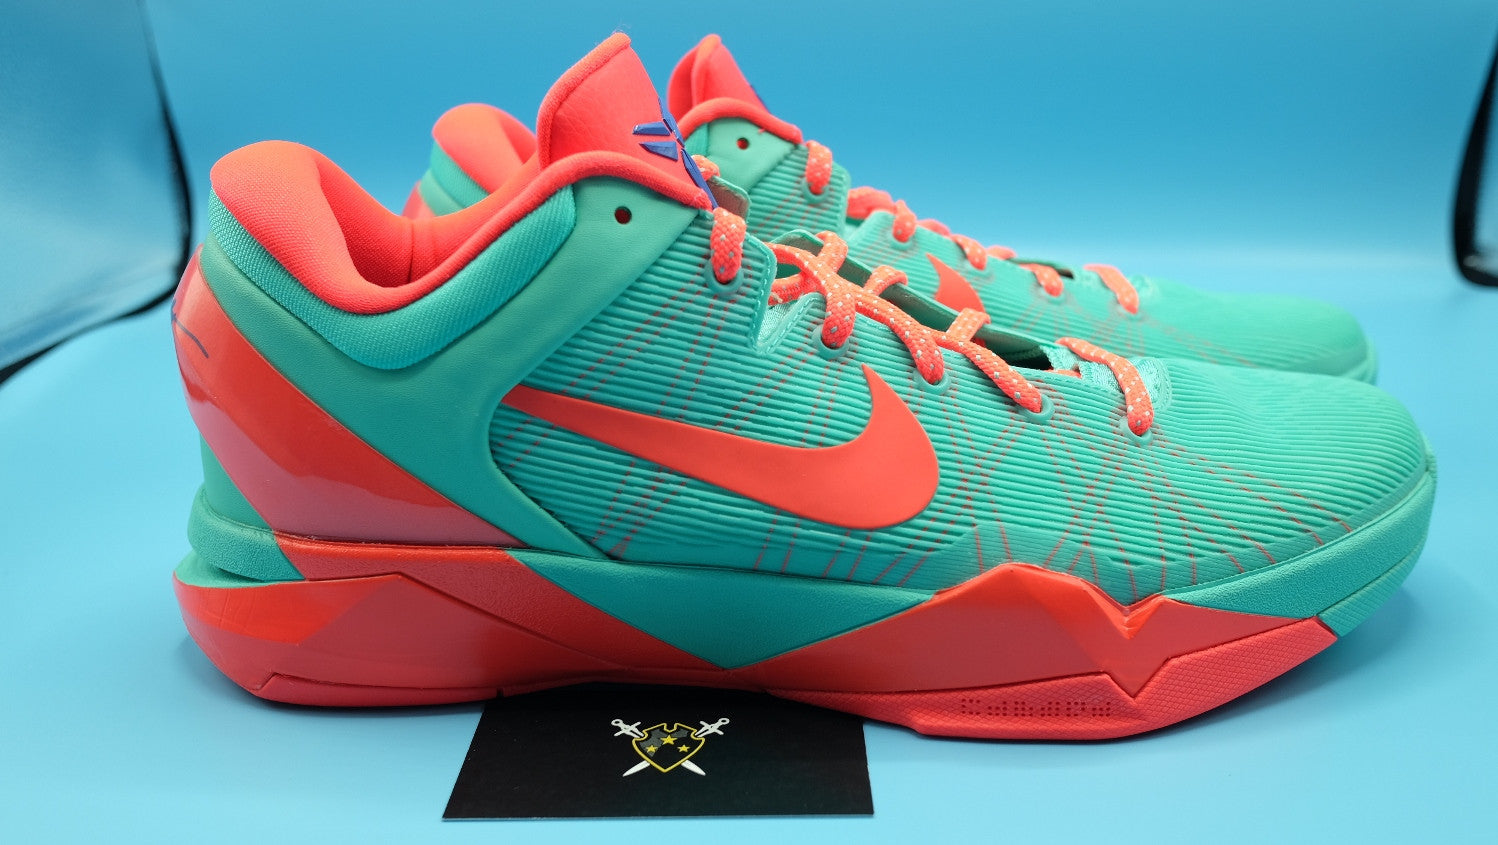 sports shoes 3b969 0c8fa ... Nike Zoom kobe 7   FC Barcelona Blue Teal DarkSole.net (1) ...